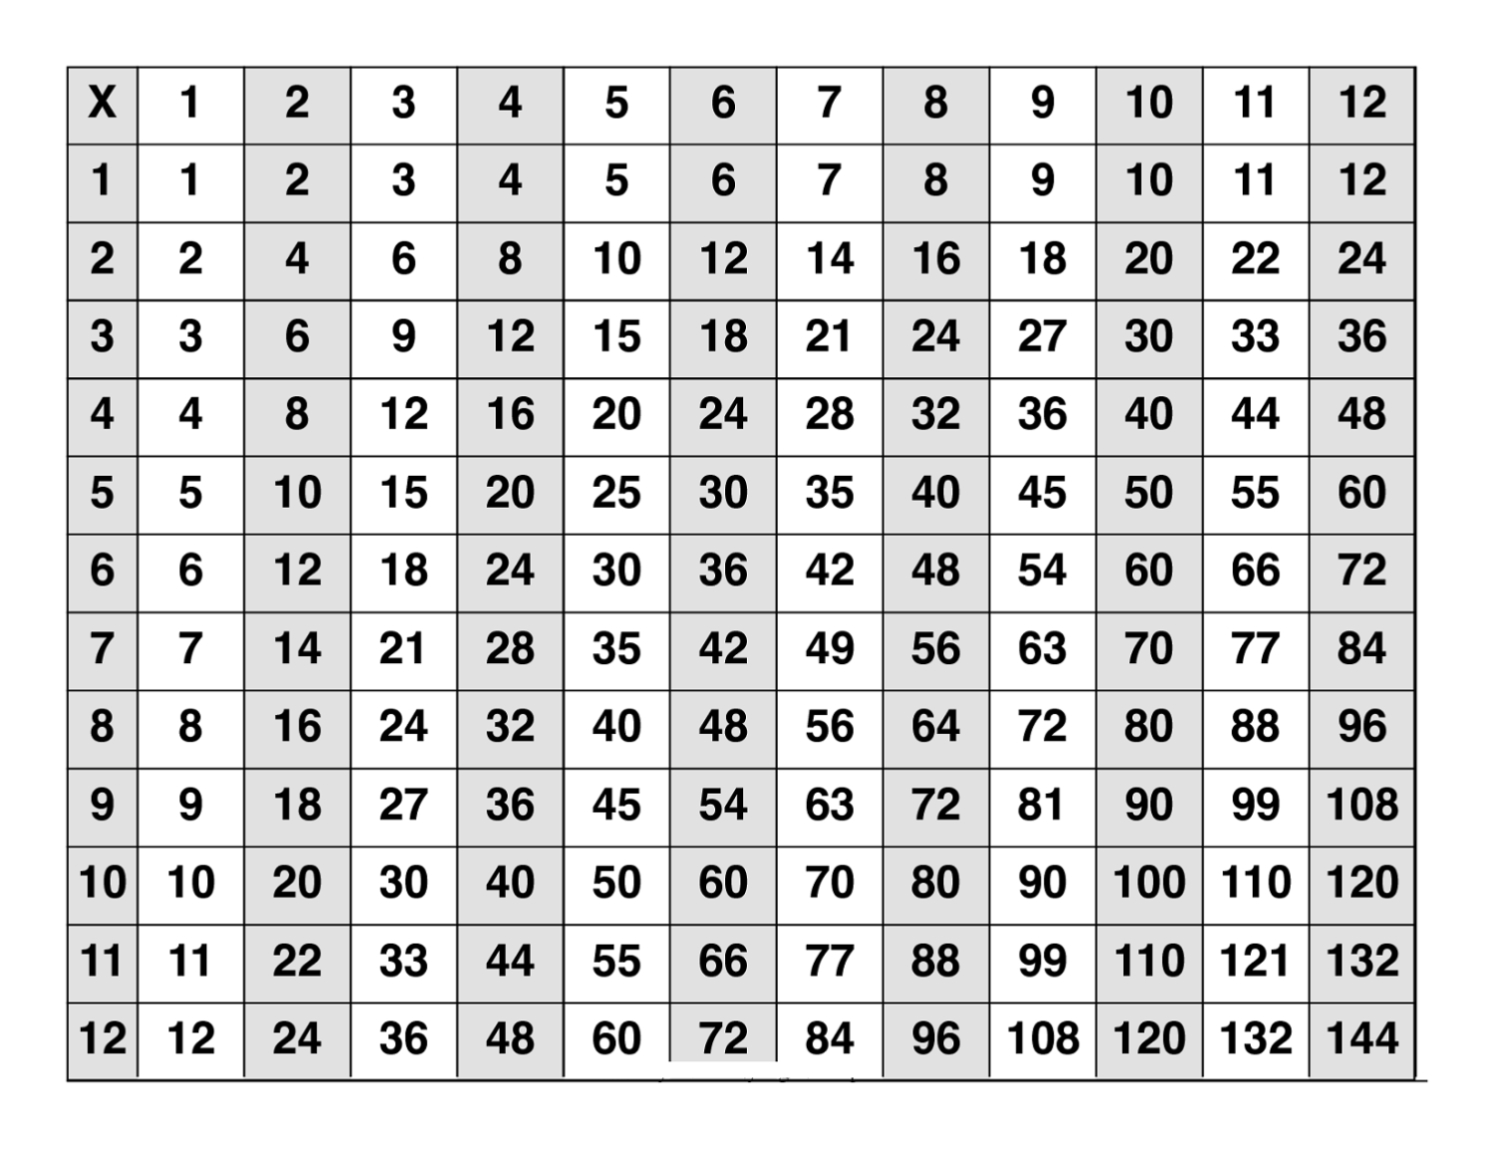 12 Math Worksheet Multiplication Chart | Printable pertaining to Printable Multiplication Table Of 12